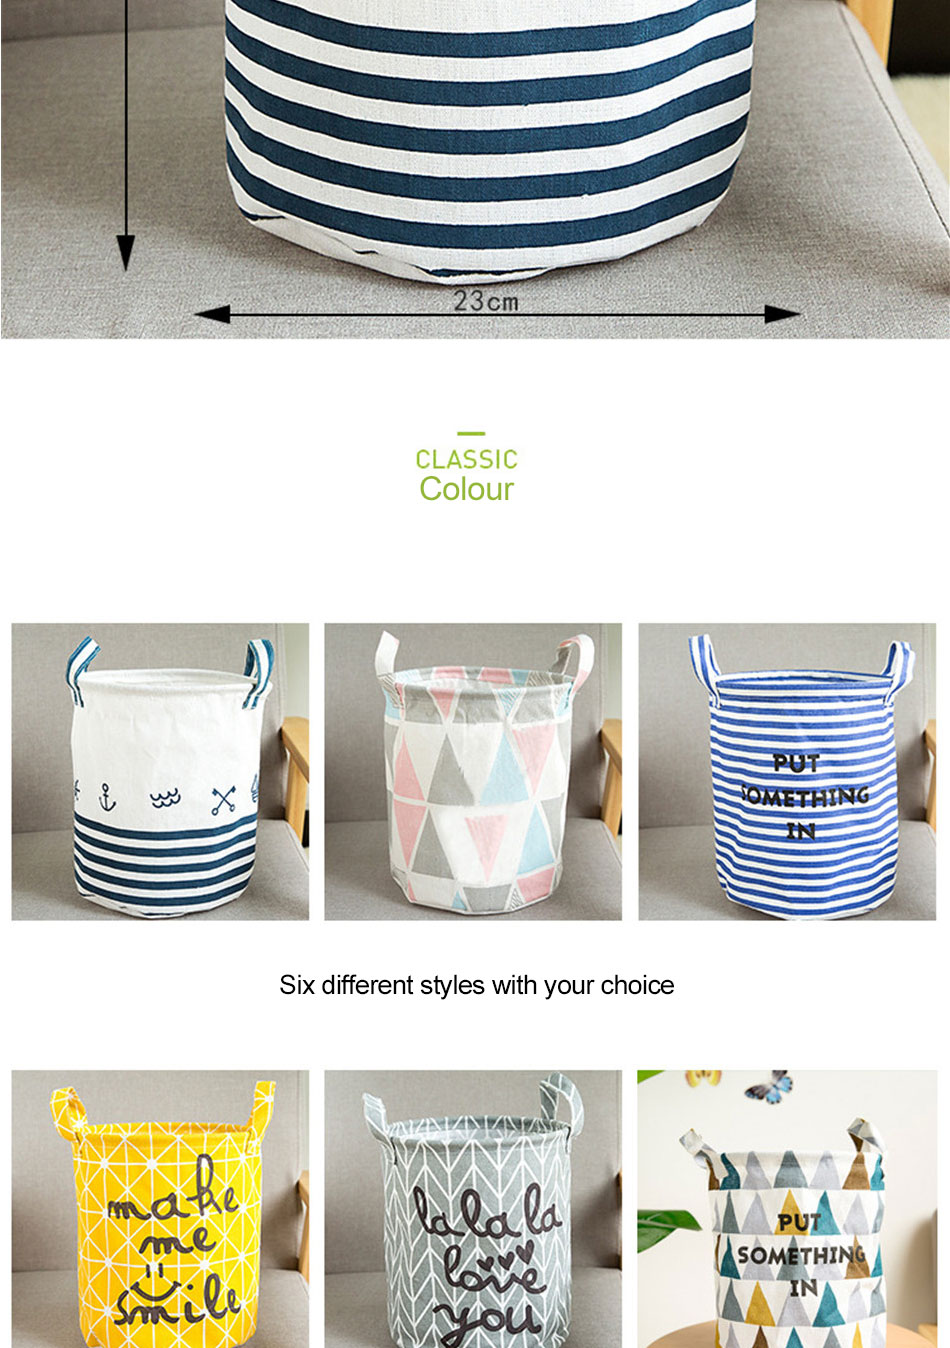 Storage Baskets Folding Laundry Basket Yellow Arrow Couple Linen Washing Clothes Barrel Bags With Handles Kids Toys Hamper Bag (3)